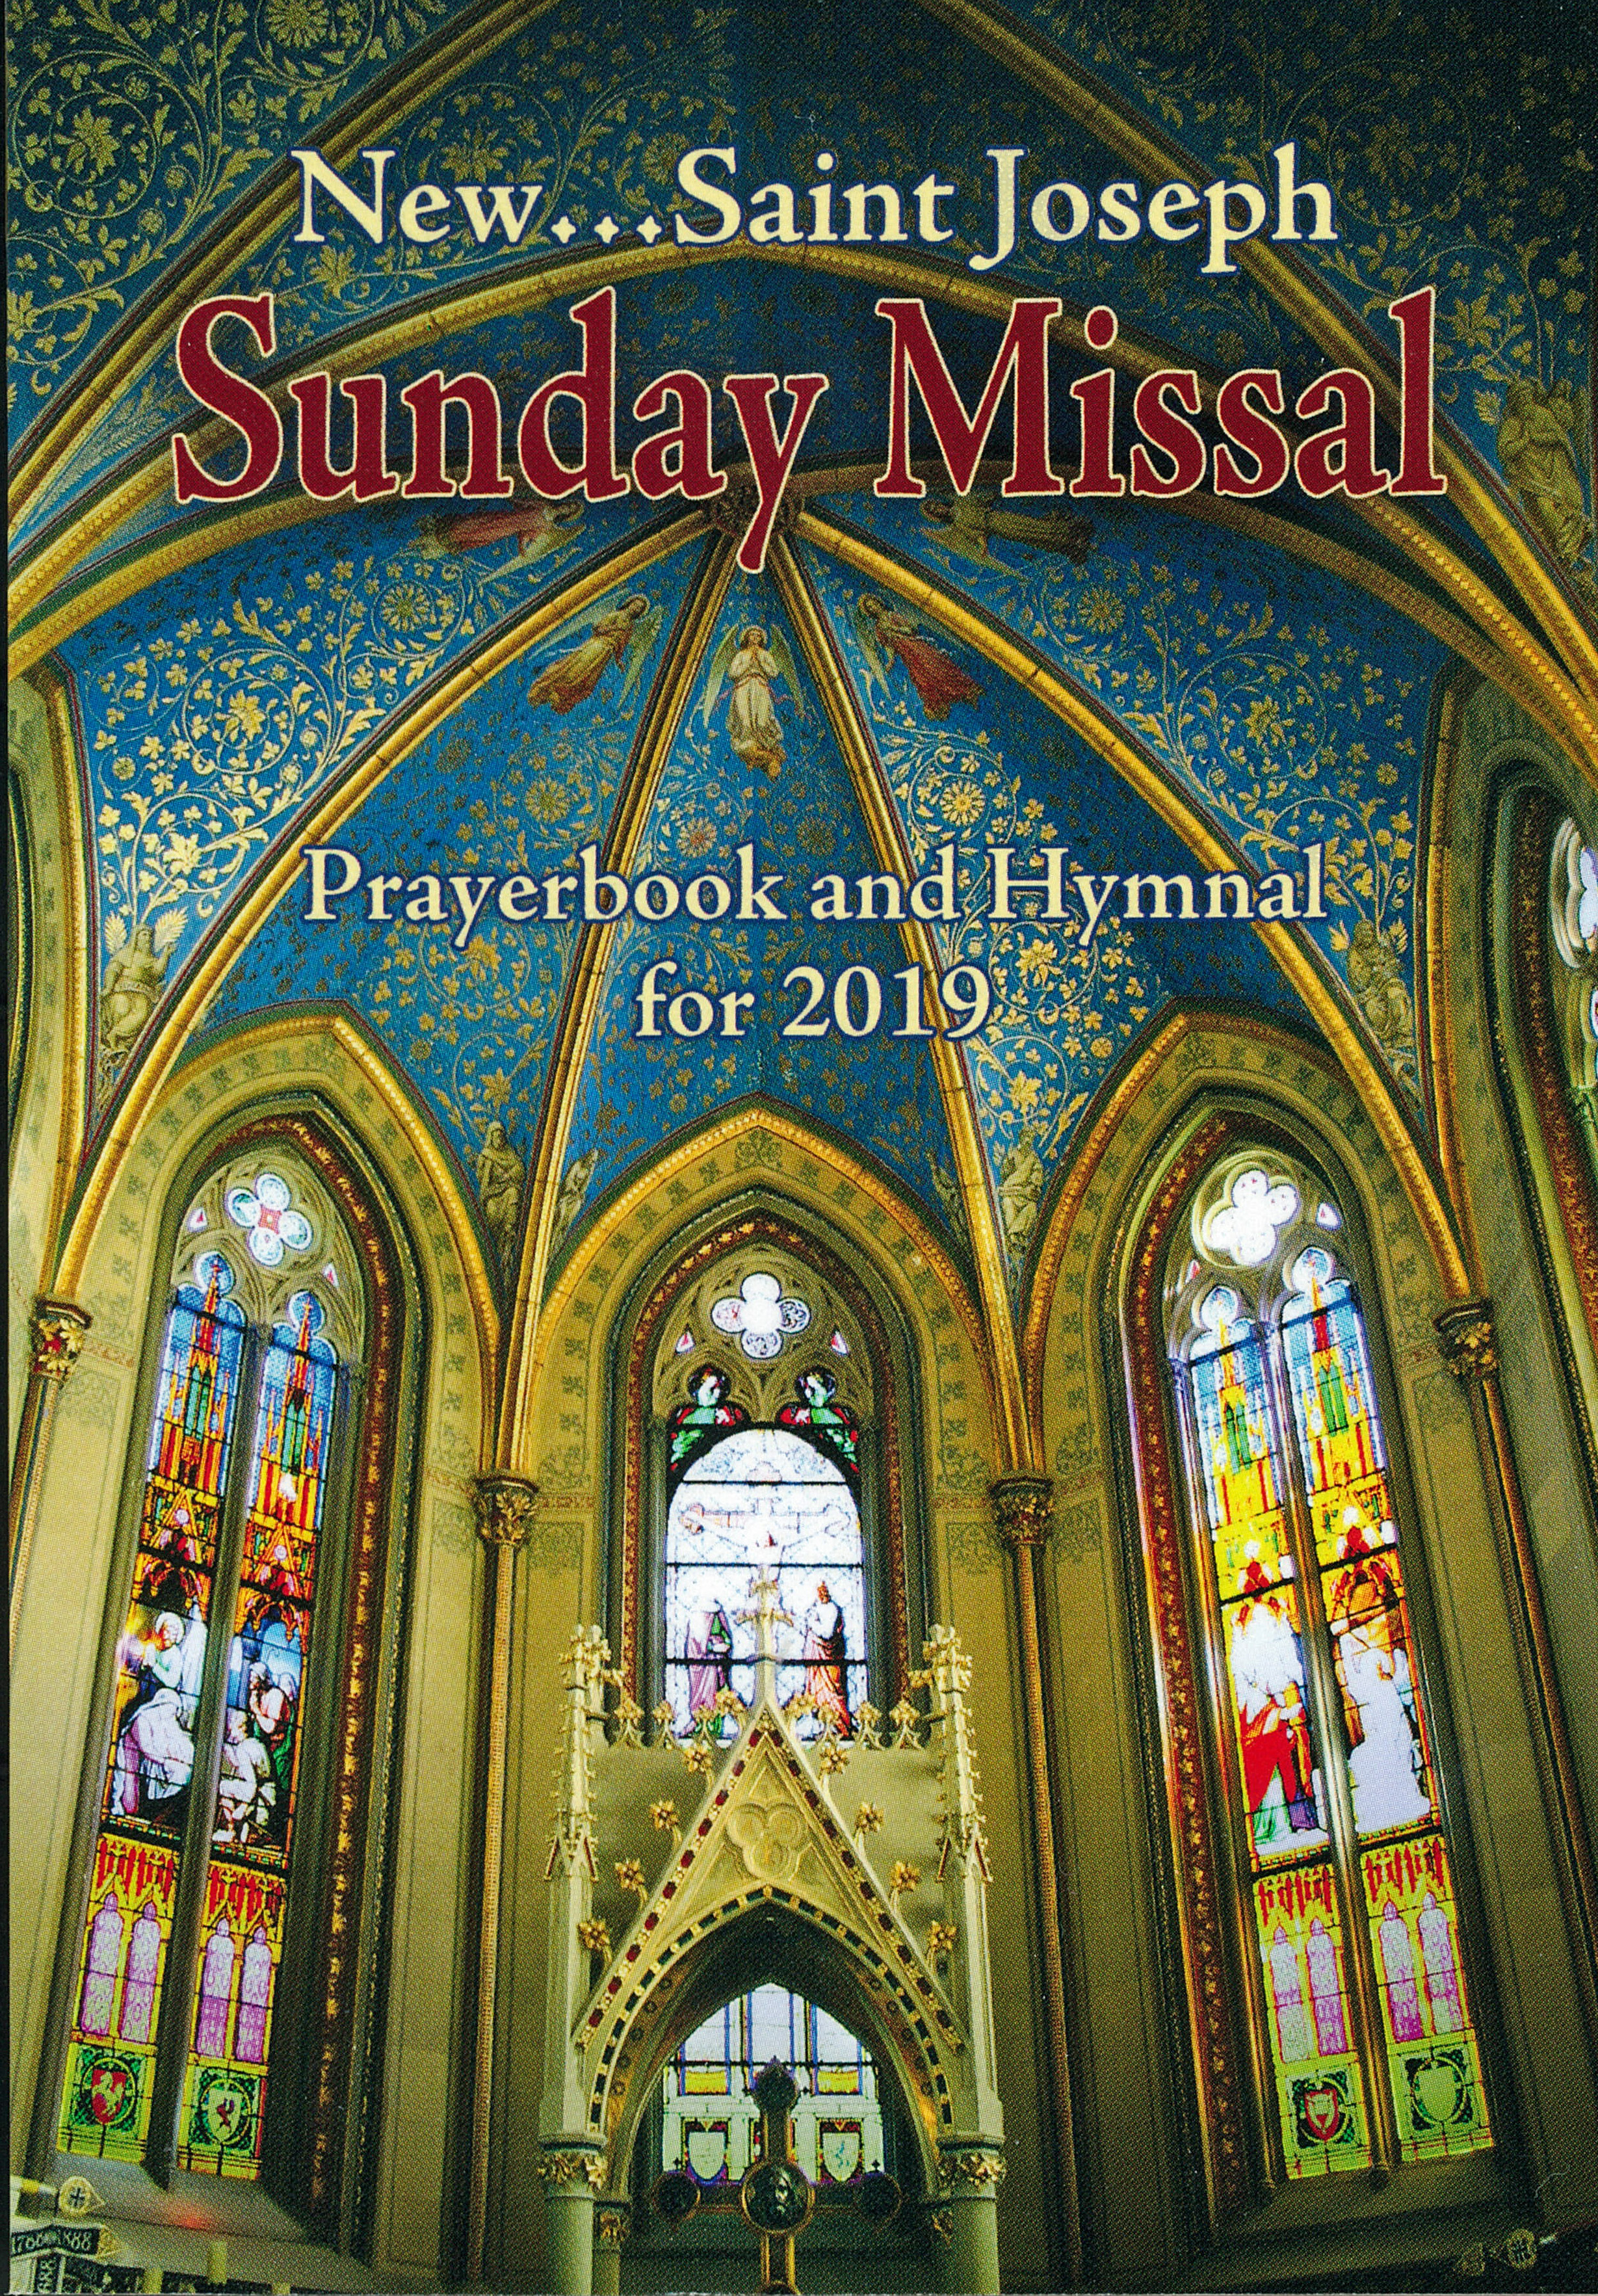 St. Joseph 2019 Sunday Missal, Prayerbook and Hymnal